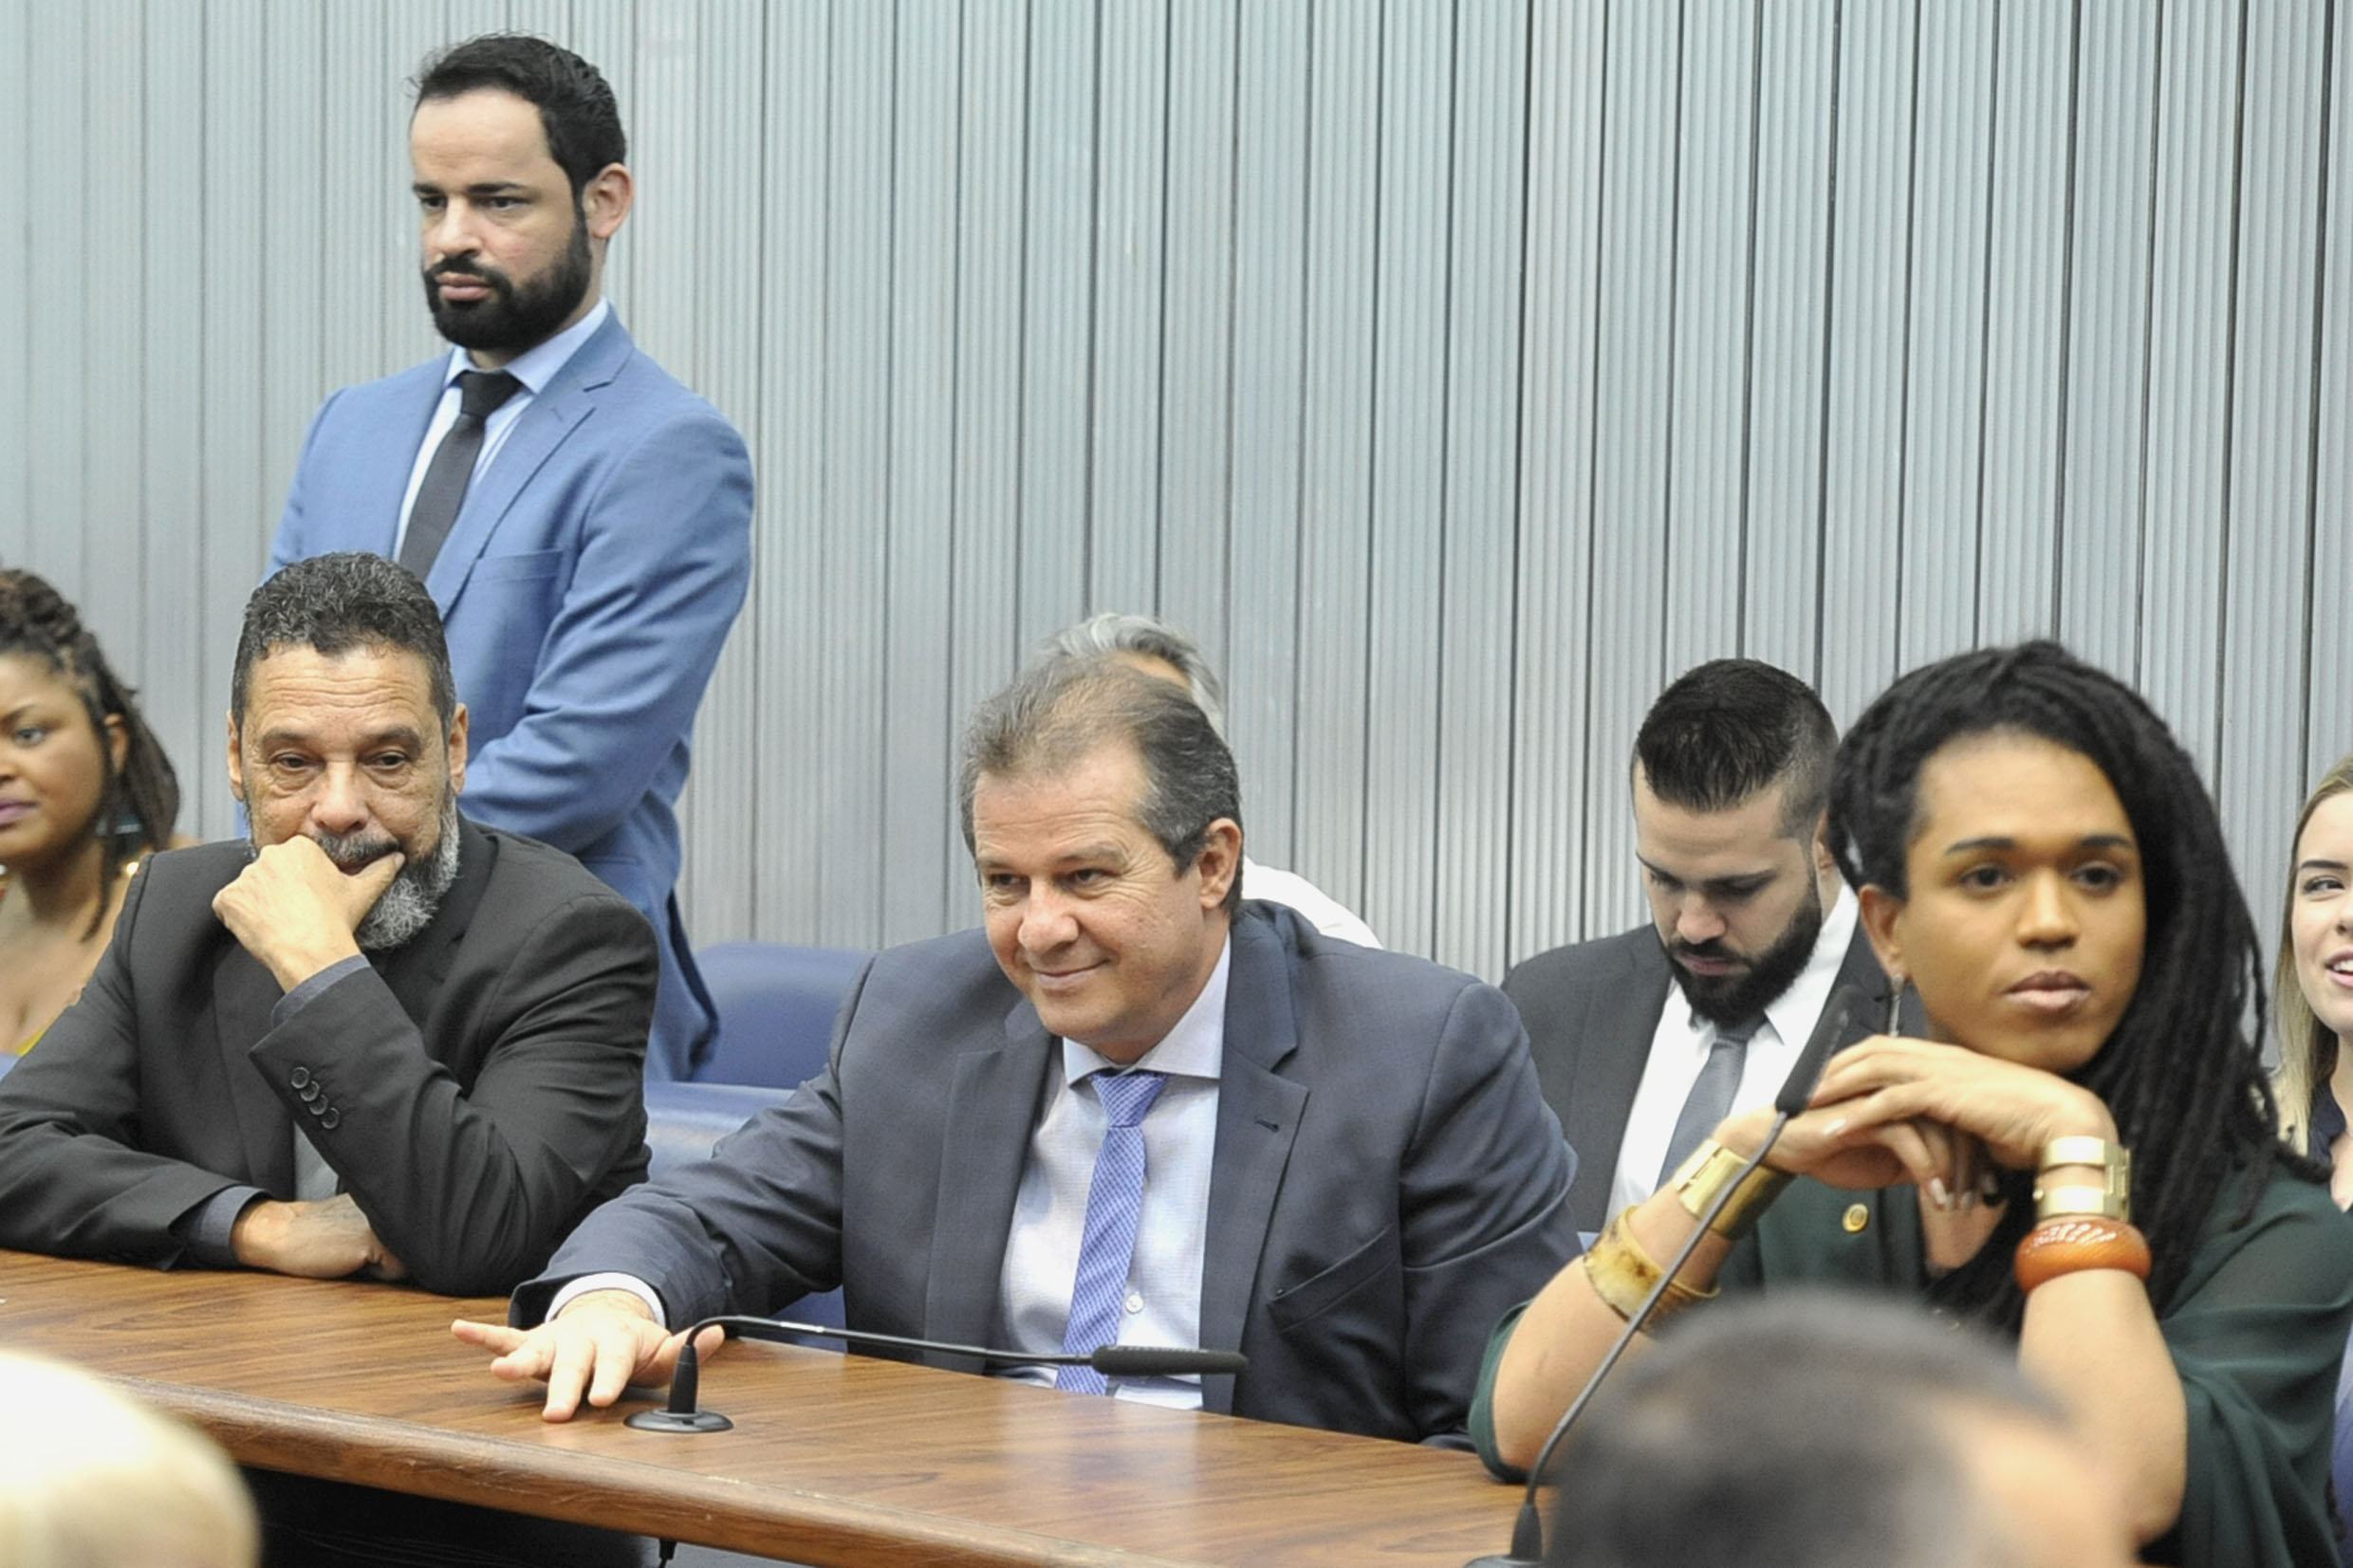 Parlamentares na comissão<a style='float:right' href='https://www3.al.sp.gov.br/repositorio/noticia/N-04-2019/fg232932.jpg' target=_blank><img src='/_img/material-file-download-white.png' width='14px' alt='Clique para baixar a imagem'></a>